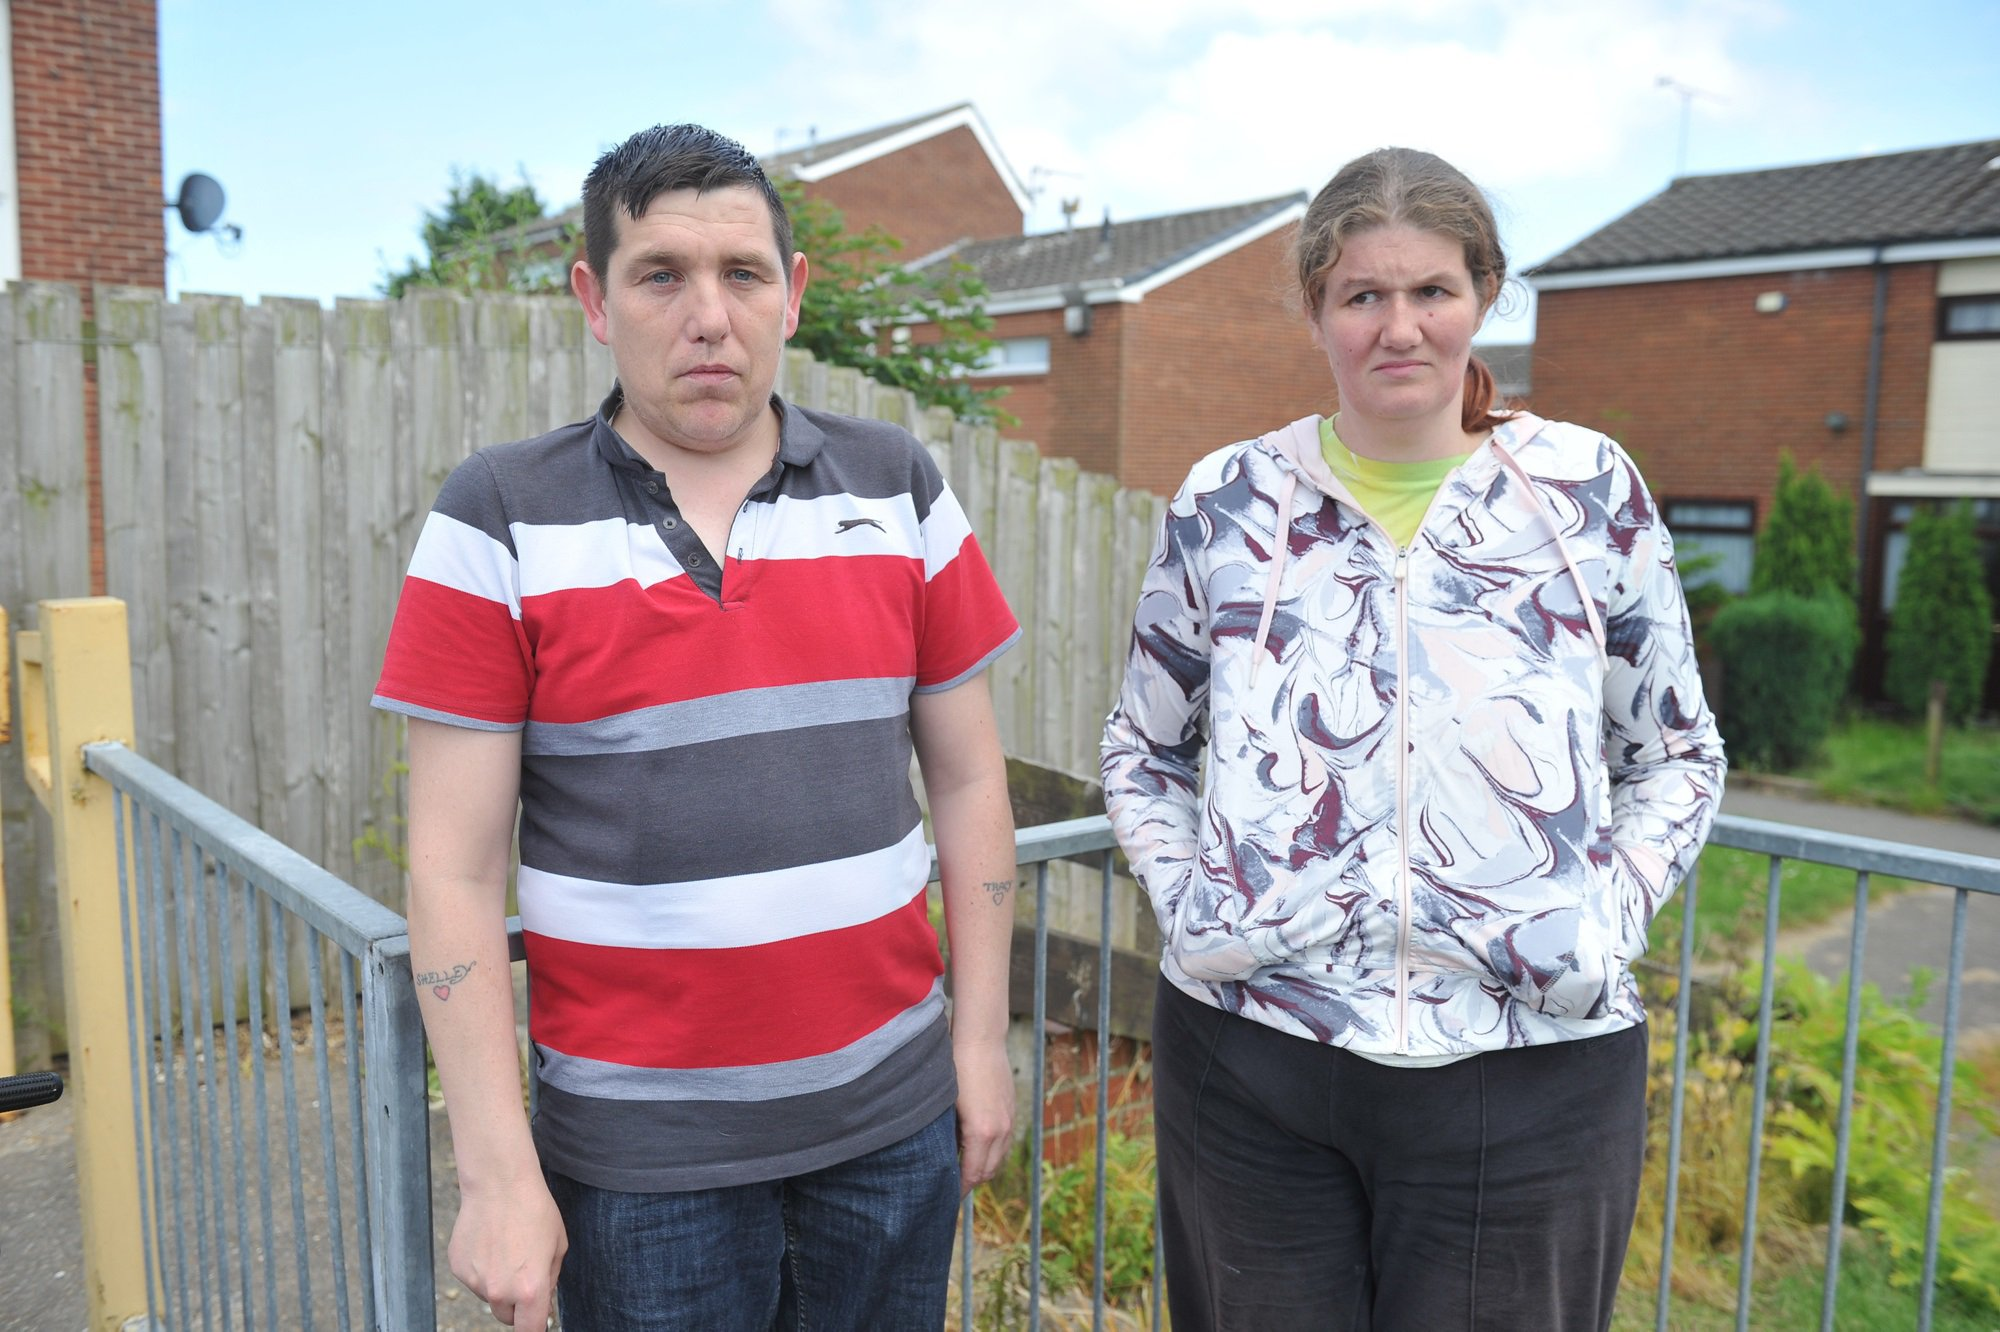 Two friends with learning difficulties have spoken of their terror after being chased and pelted with stones by vile youths in an alleged ?hate crime? attack. Chris Johnson, 43, and Heidi Fraser, 33, were targeted by two boys and a girl who began abusing the pair outside Nisa in Wawne Road, Hull, on Monday night.